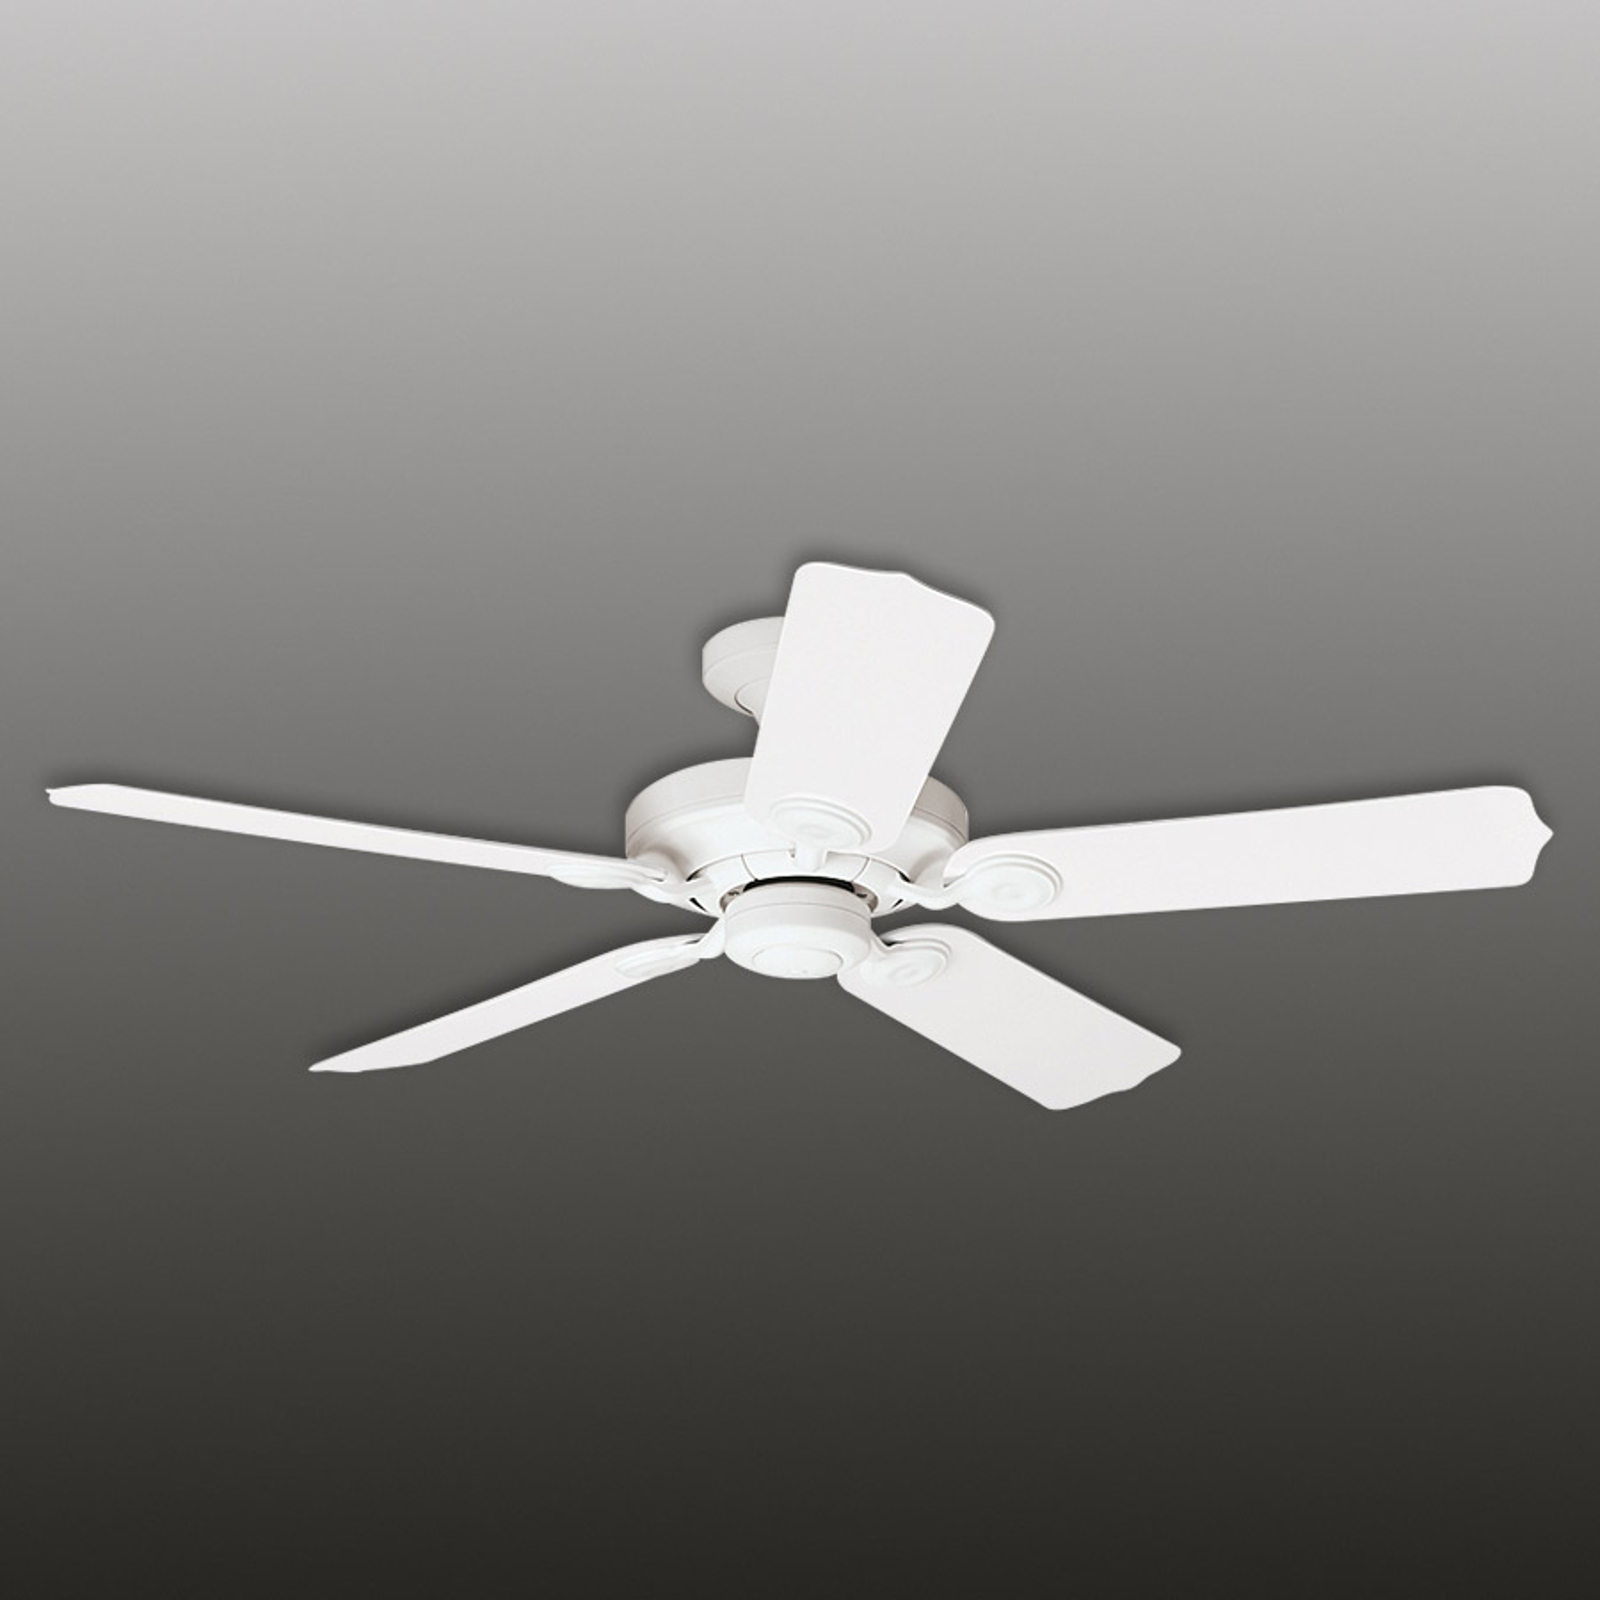 Ventilateur de plafond Outdoor Elements blanc IP44